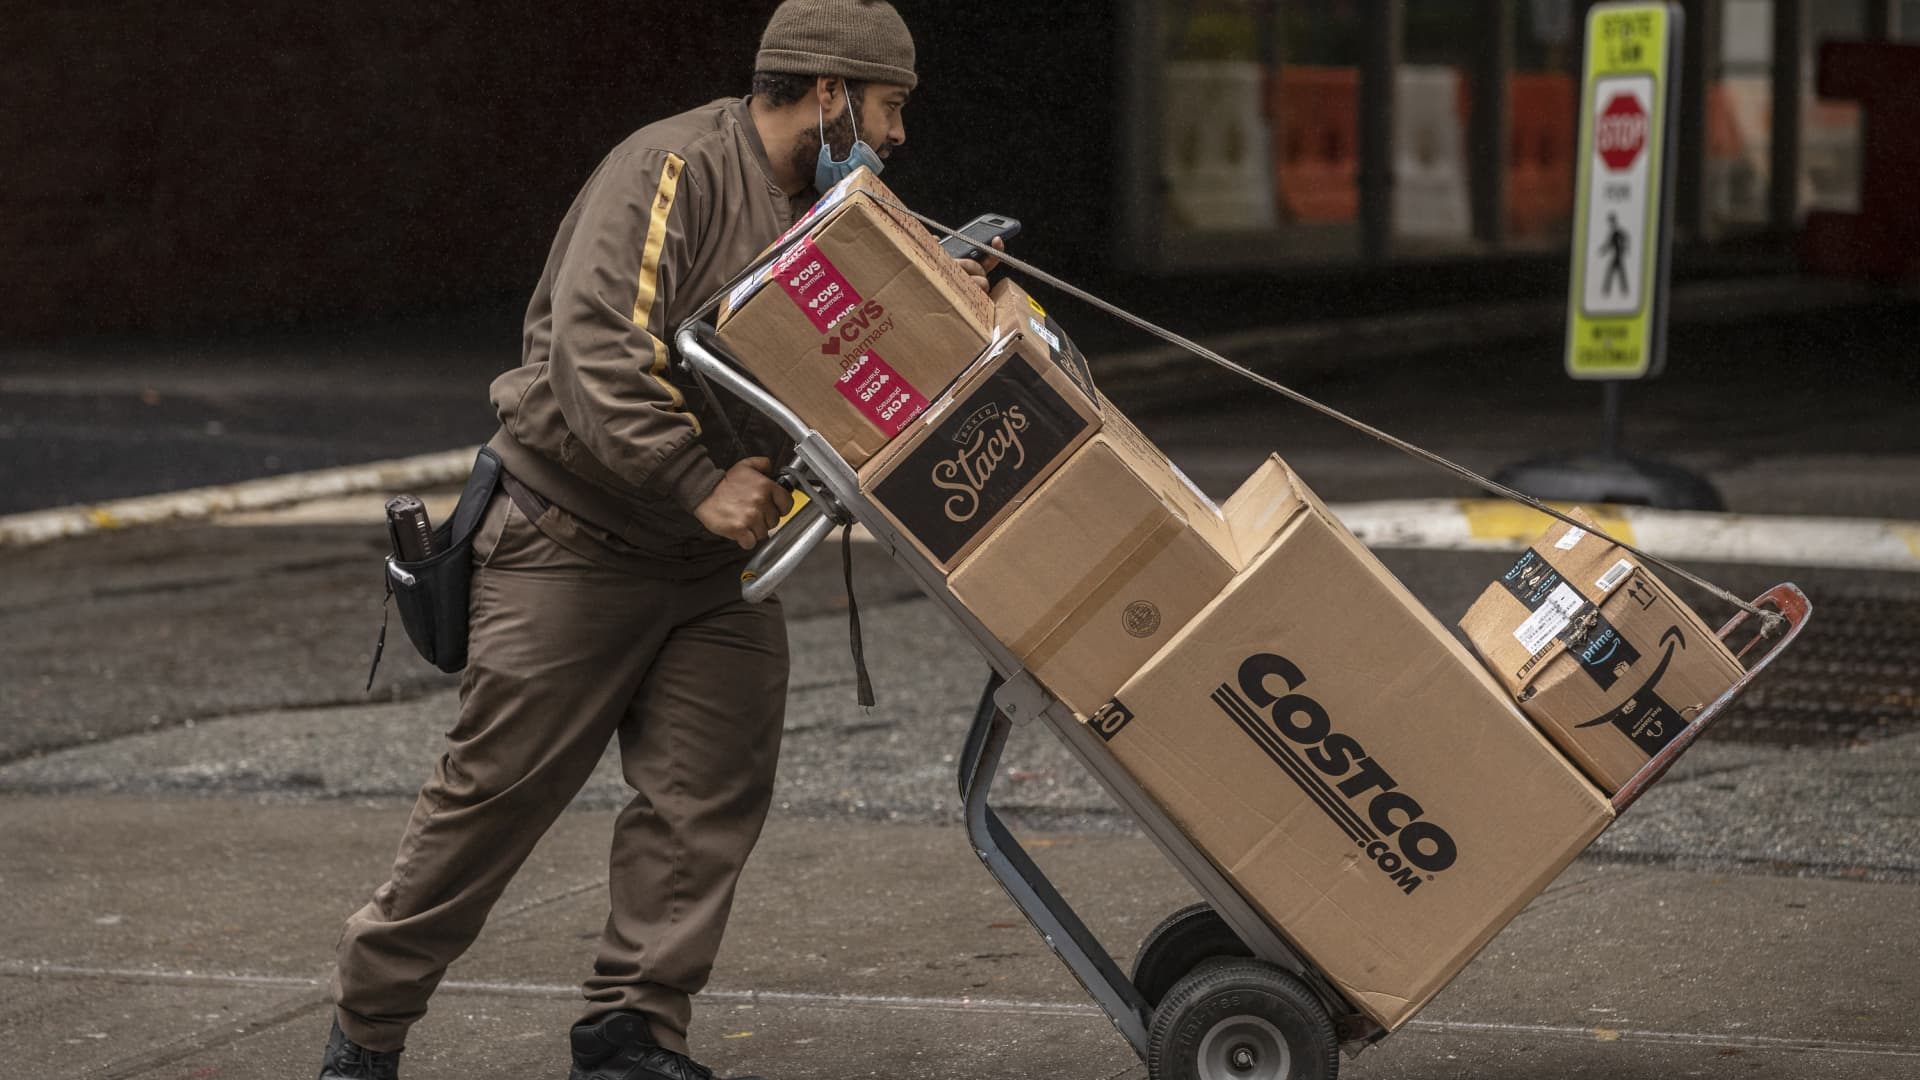 A United Parcel Service Inc. (UPS) driver delivers boxes in New York, U.S., on Tuesday, Oct. 13, 2020.